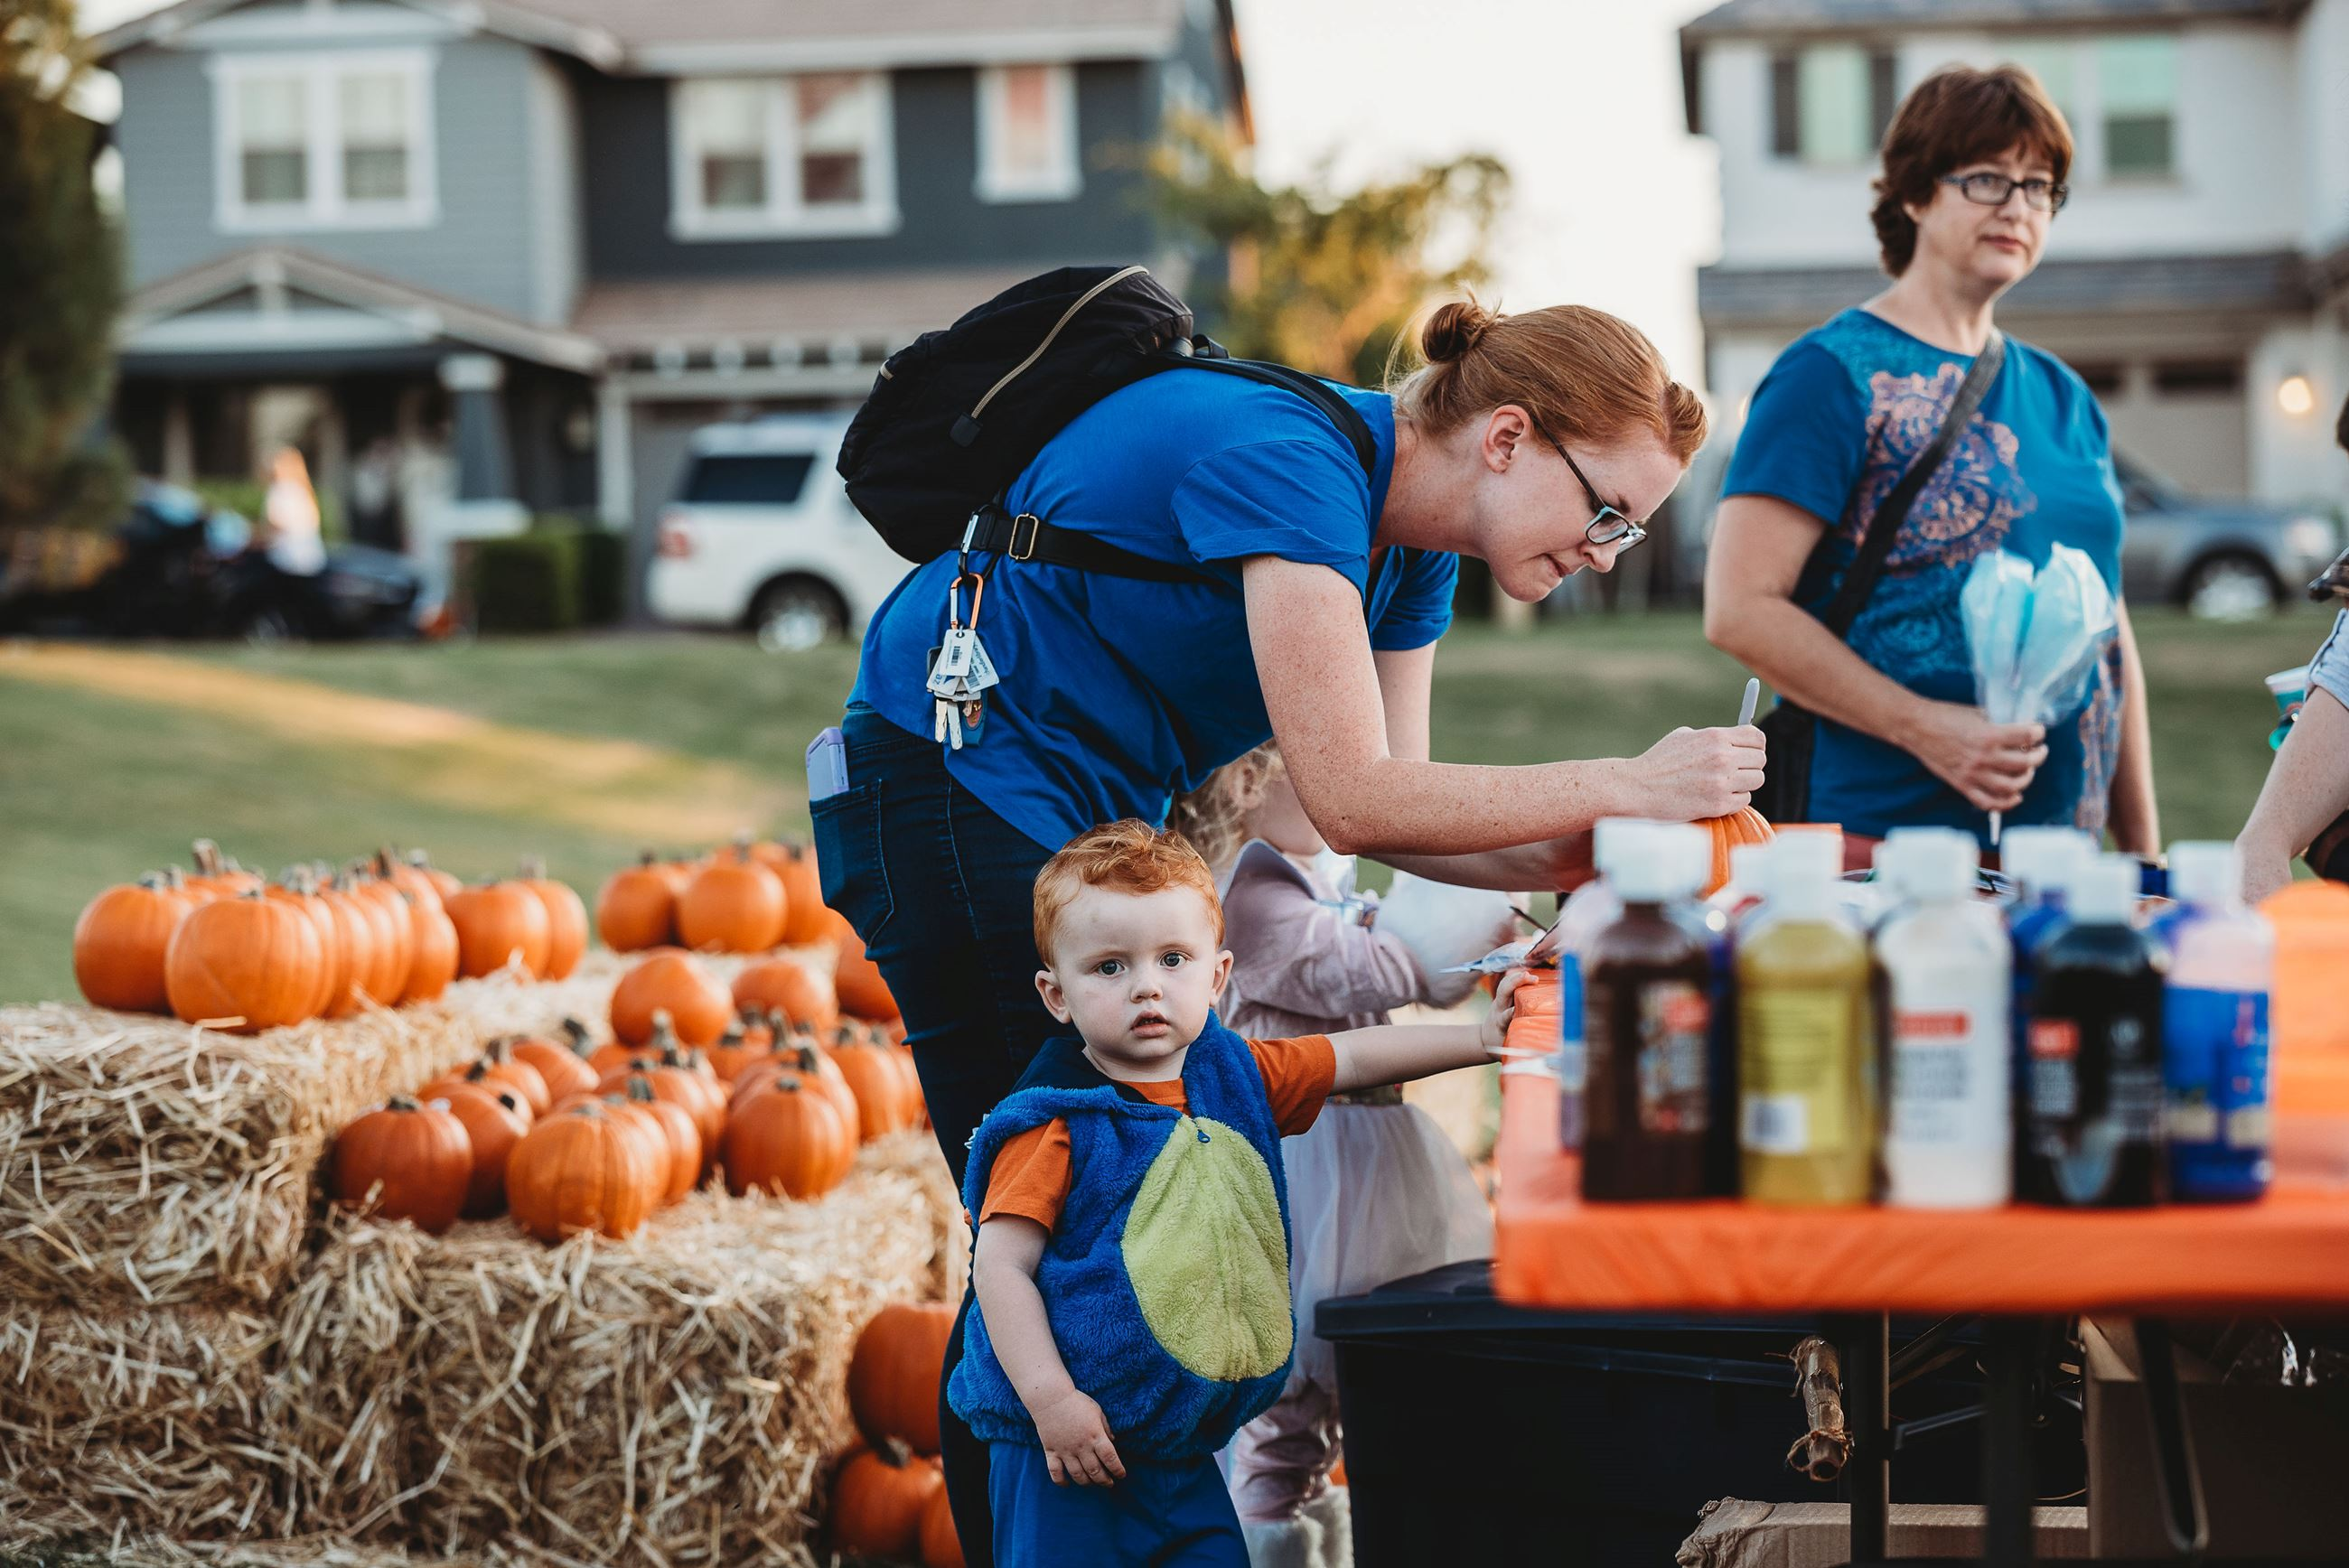 A Focused Mother Paints a Pumpkin While Her Toddler Son Notices the Camera